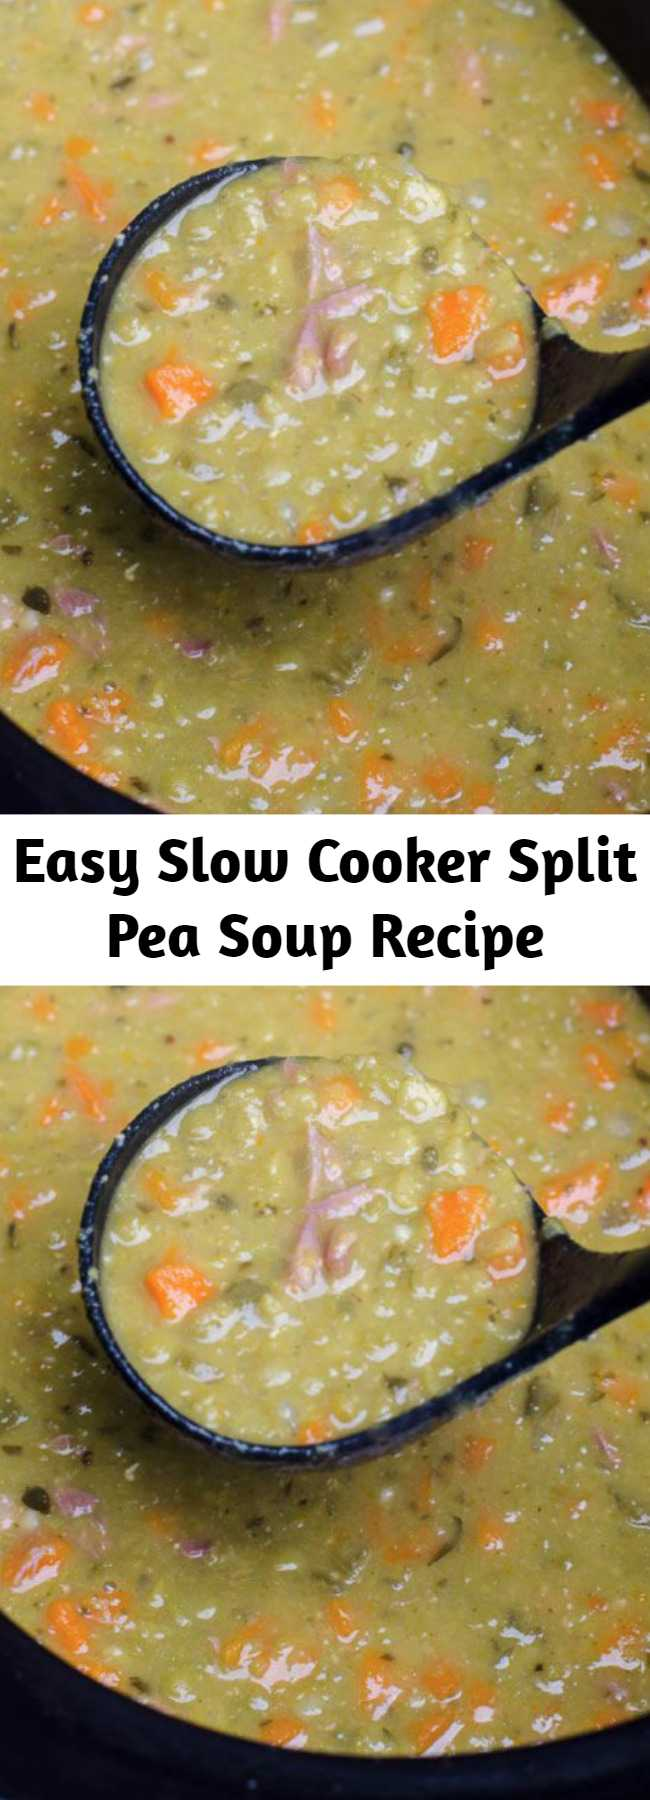 Easy Slow Cooker Split Pea Soup Recipe - Slow Cooker Split Pea Soup is a great way to make use of that leftover bone from your holiday ham. Cooking it low and slow is the best method for creating creamy, delicious split pea soup.